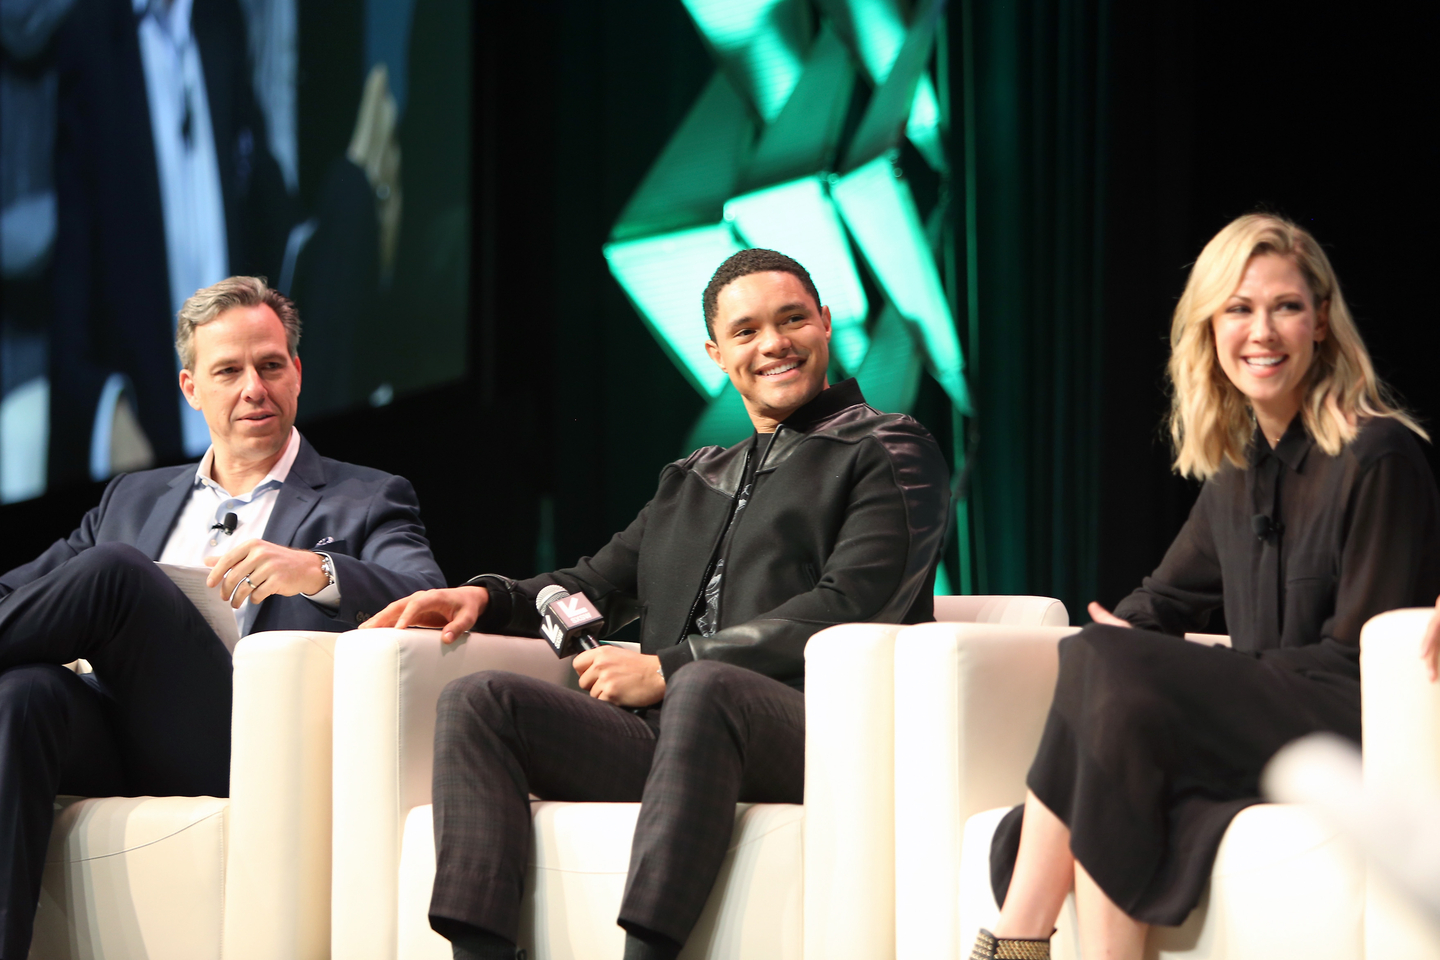 Jake Tapper, Trevor Noah, and Desi Lydic at their Featured Session - Photo by Travis P Ball/Getty Images for SXSW